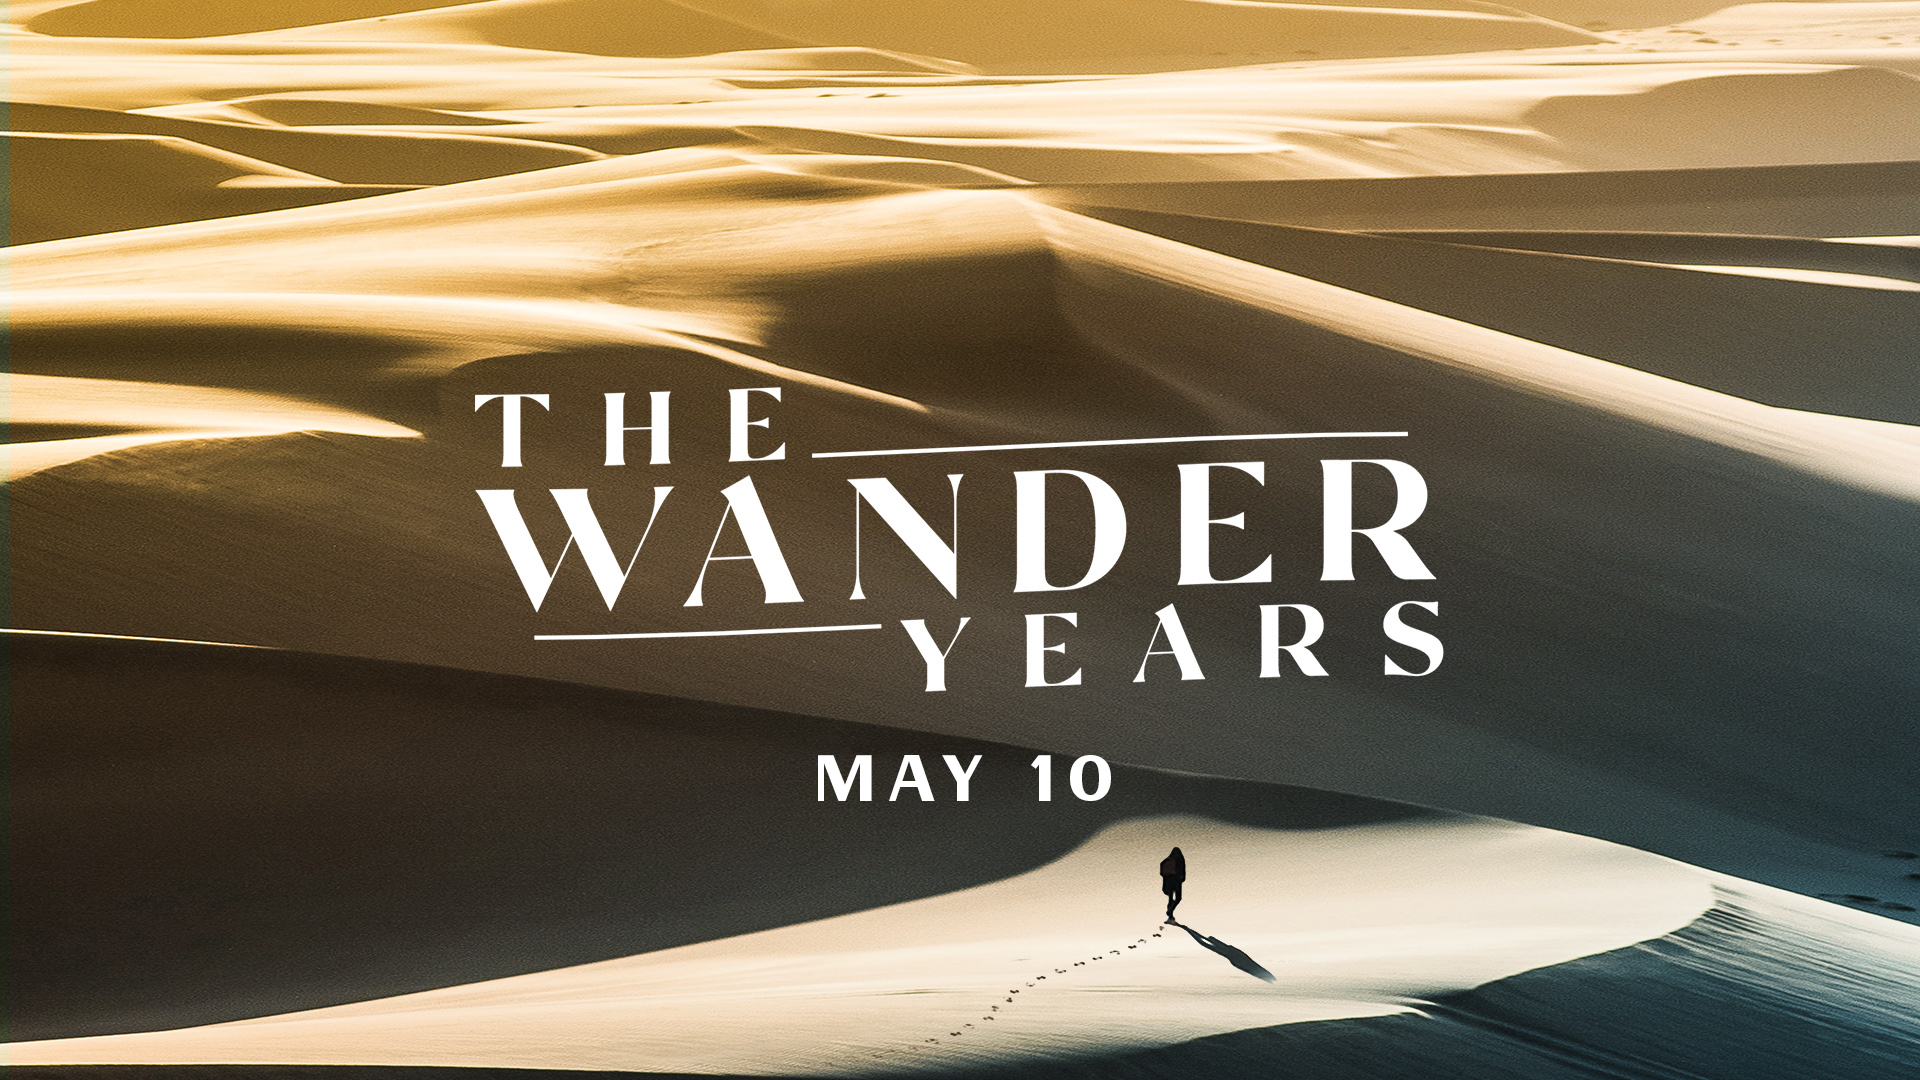 The Wander Years